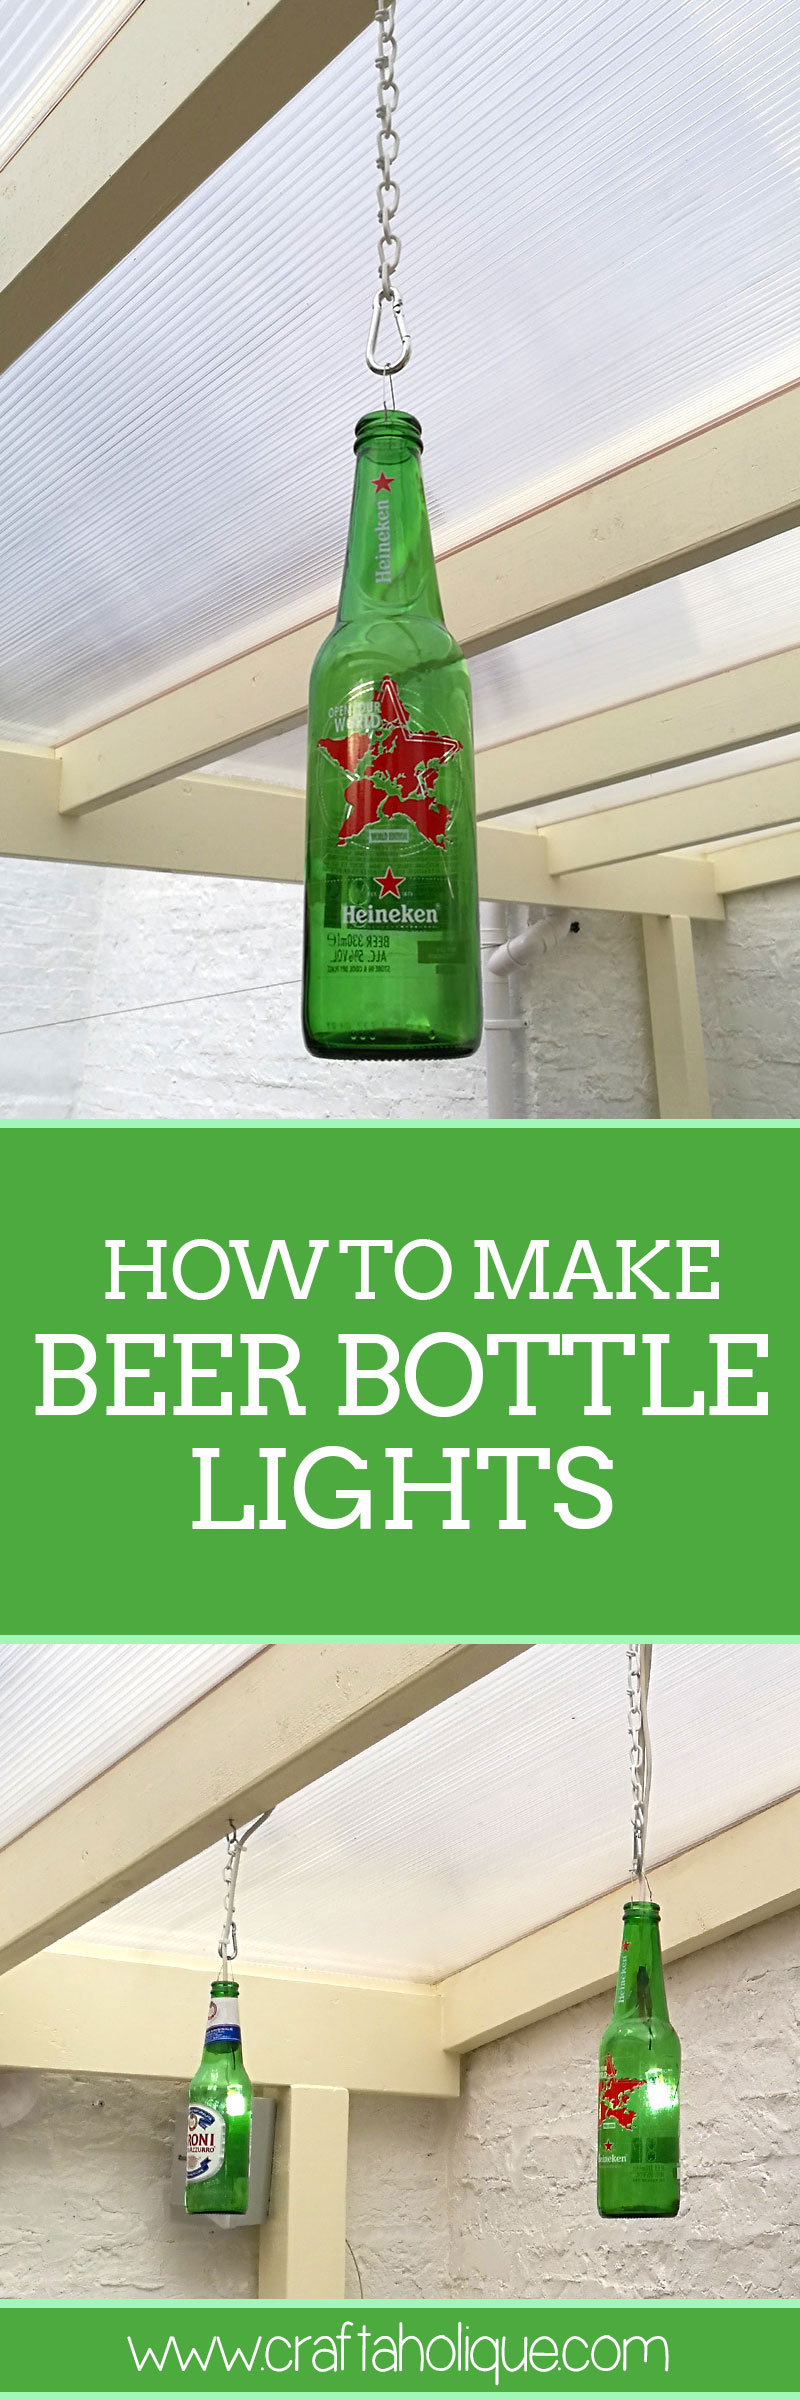 How to make beer bottle lights by Craftaholique